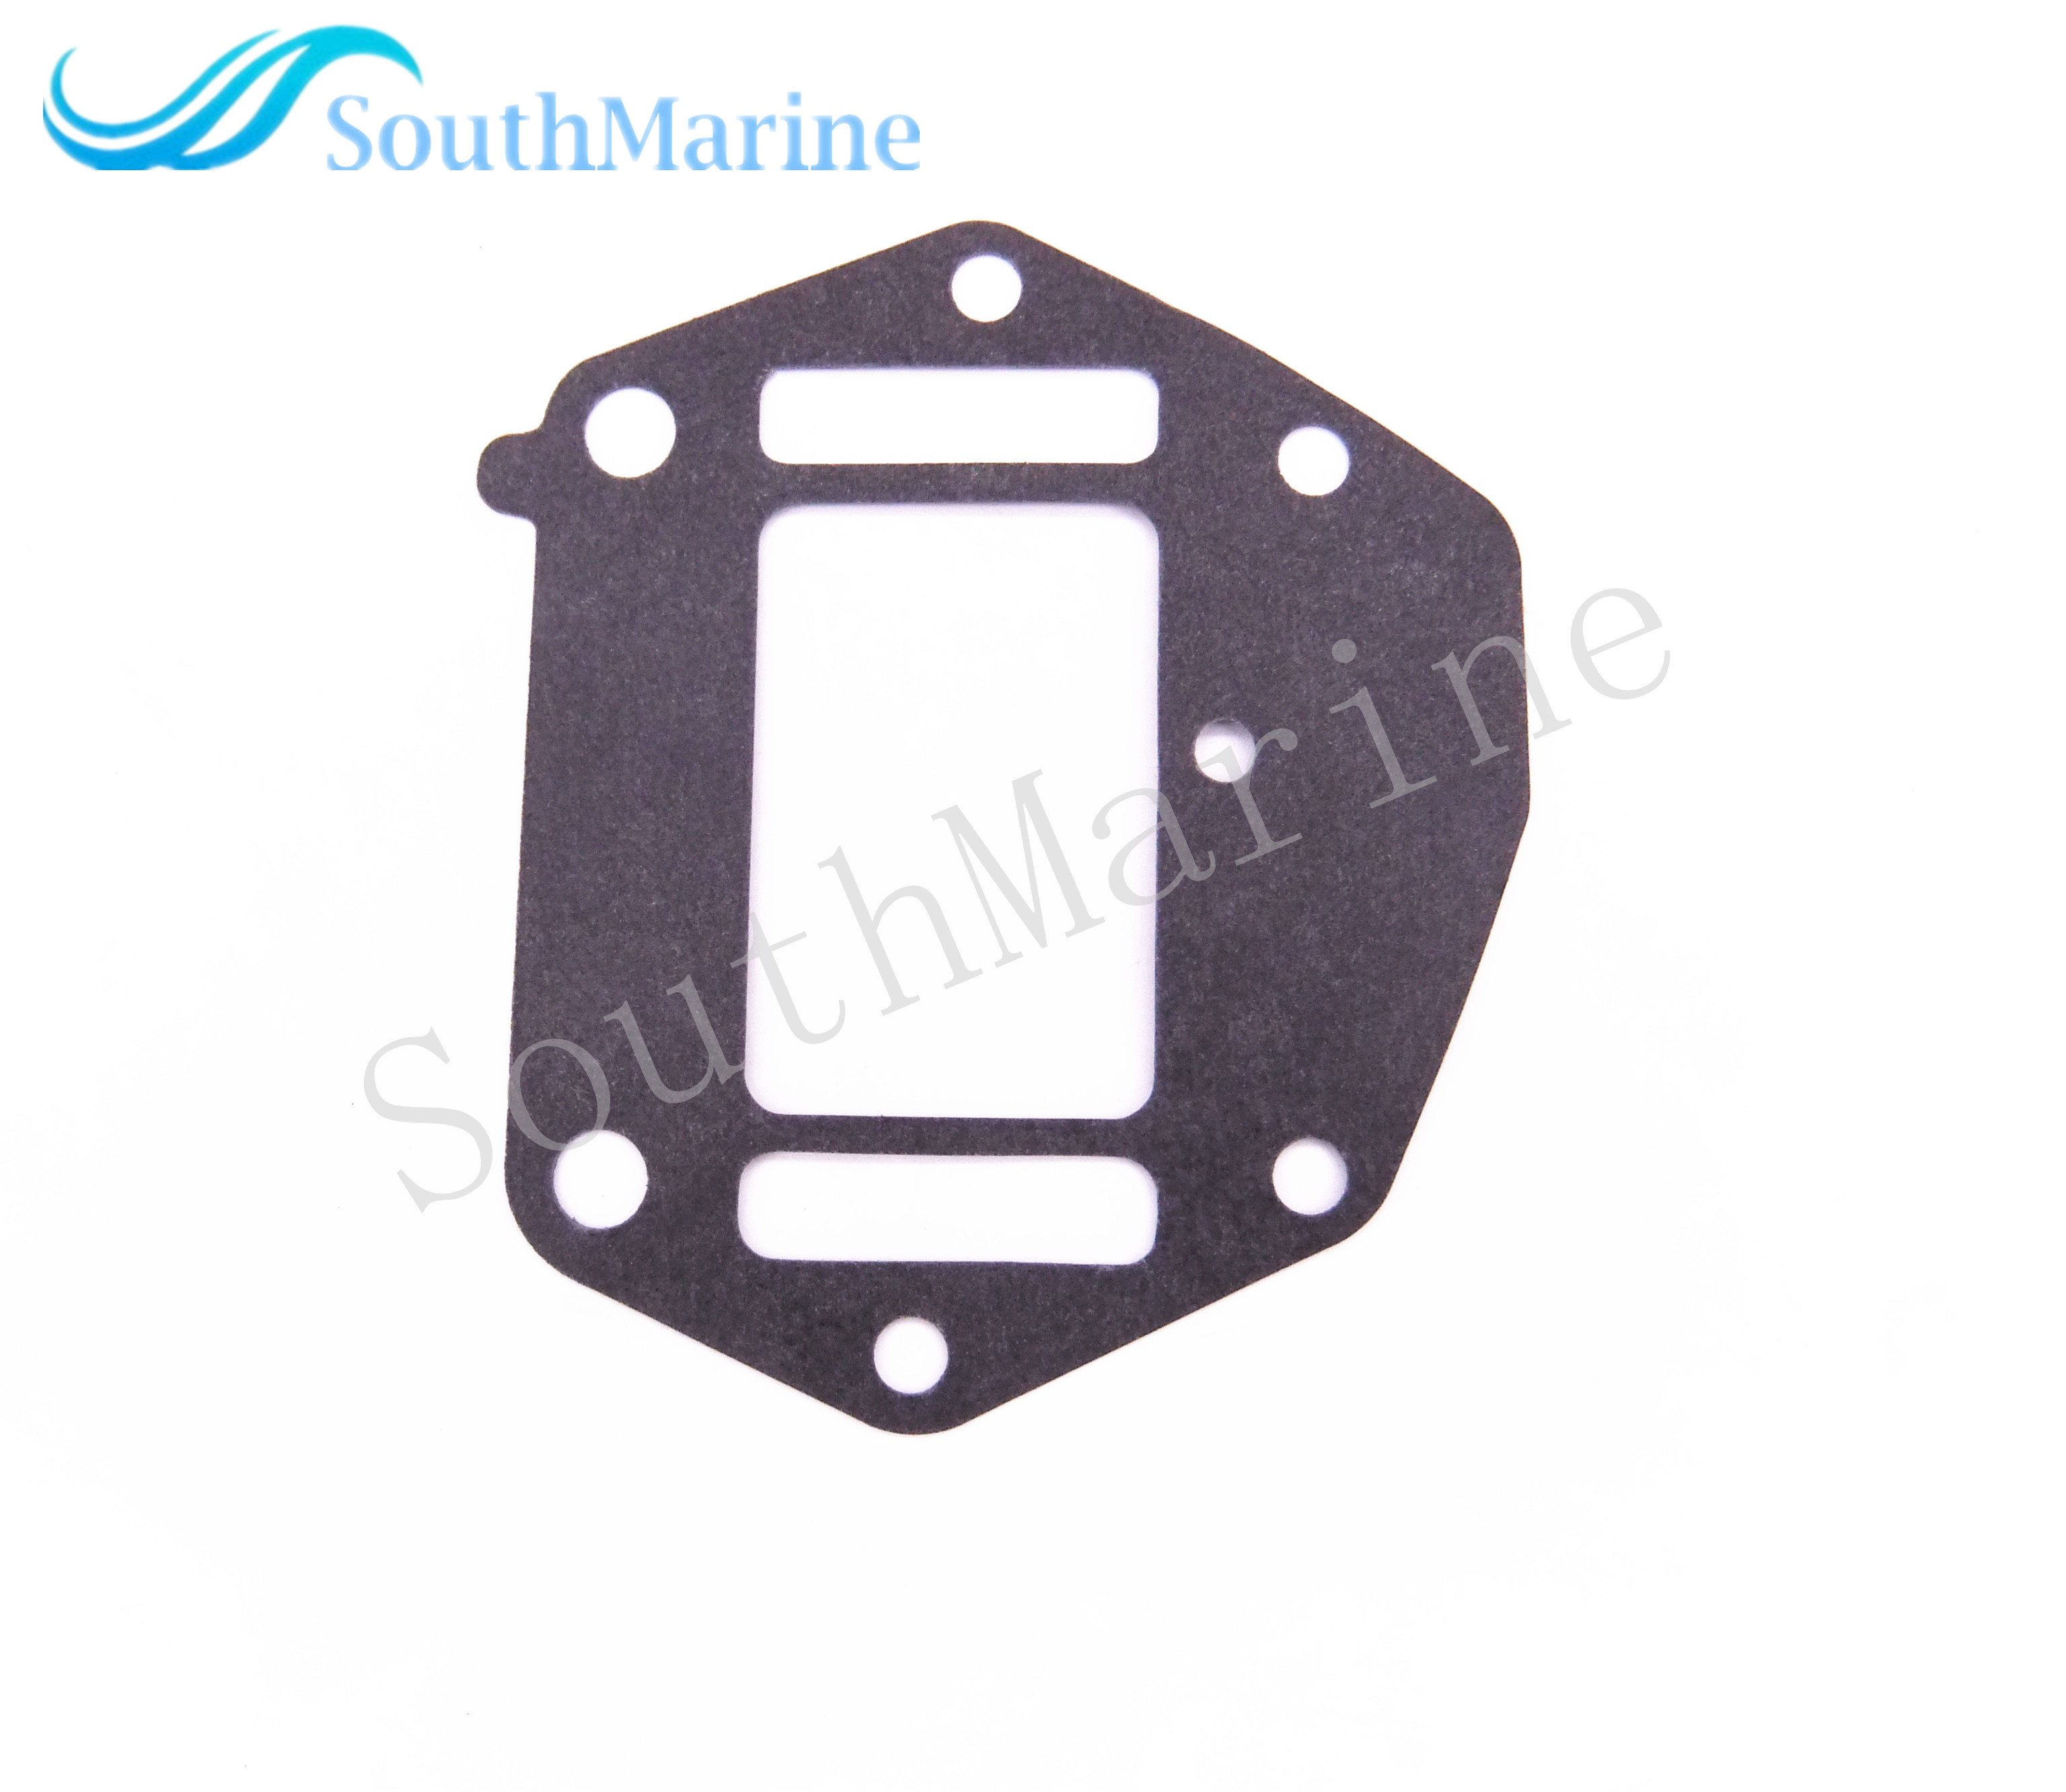 Outboard Engine 3B2-02105-0 3B202-1050M Inlet Manifold Outer Gasket for Tohatsu Nissan 2-Stroke 6HP 8HP 9.8HP Boat Motor